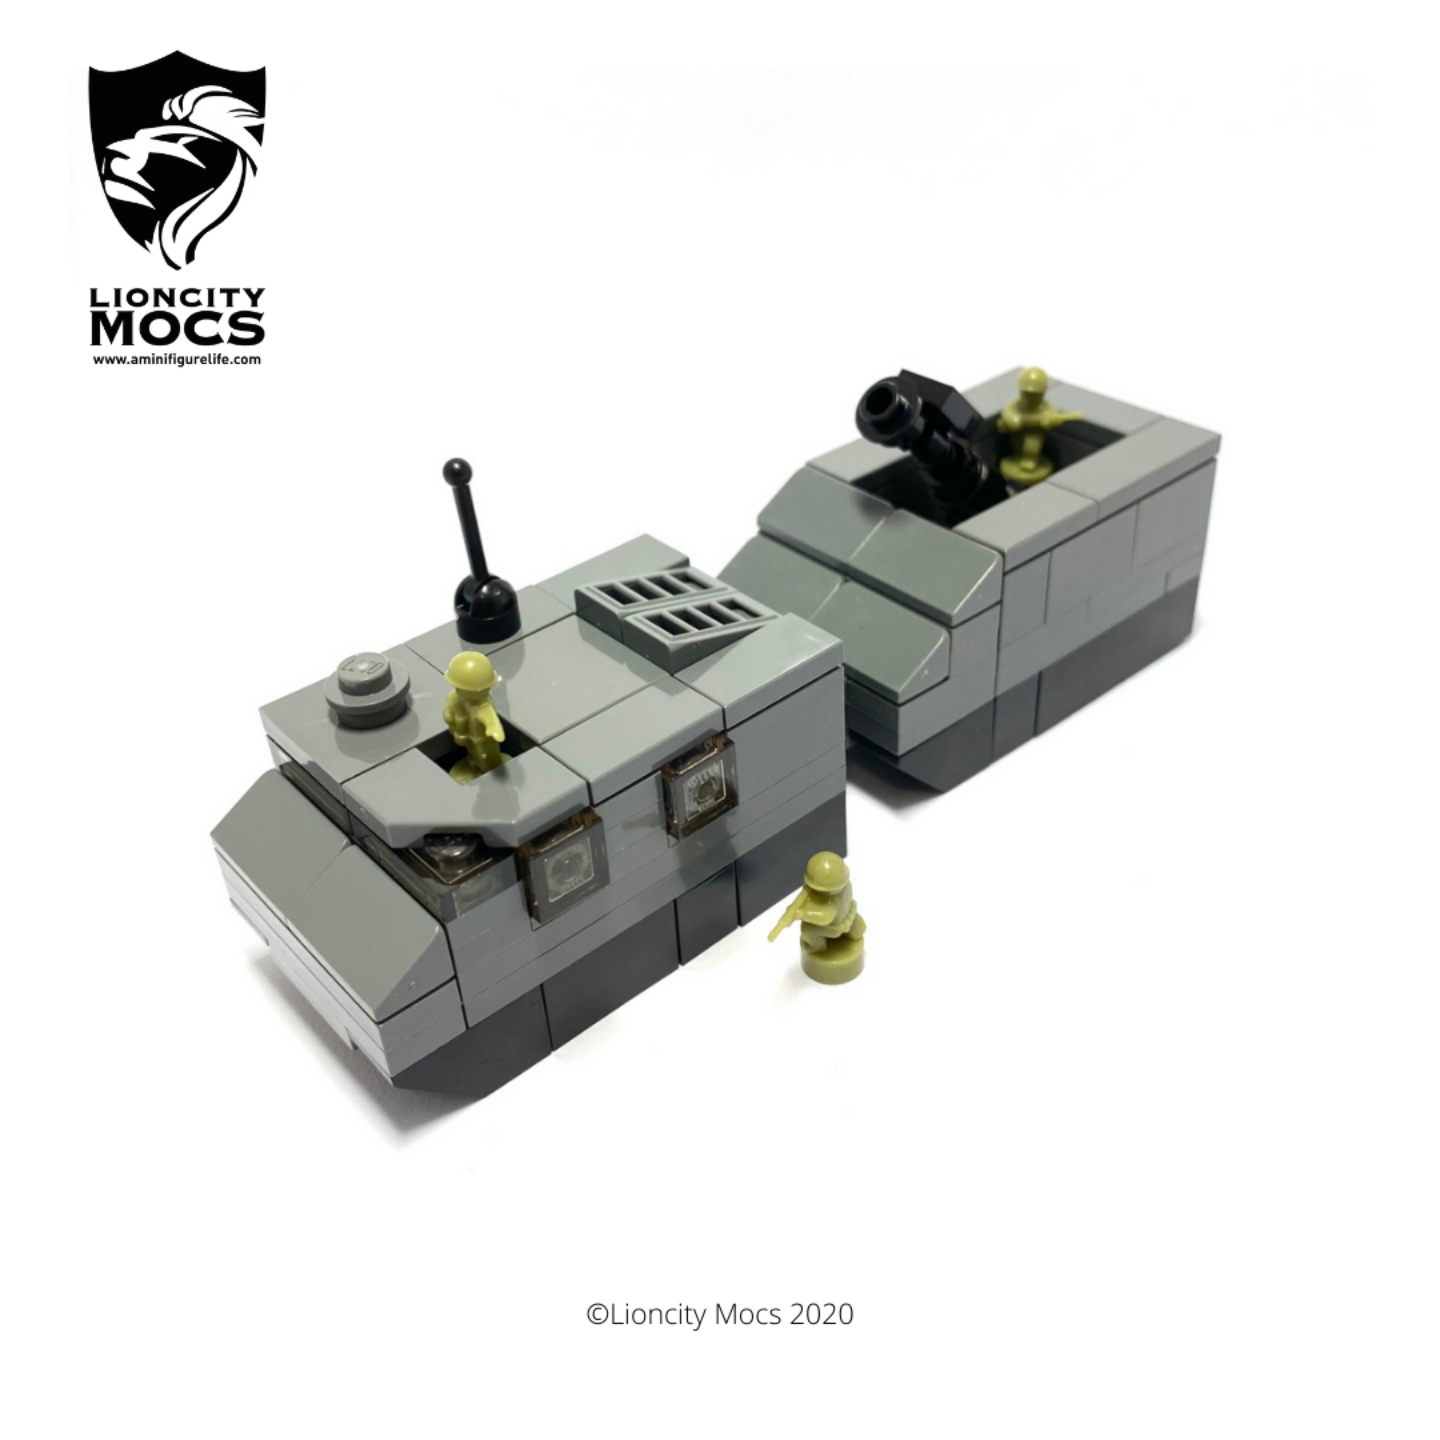 Bronco ATTC with Motar - Mini Building Kit SG1004